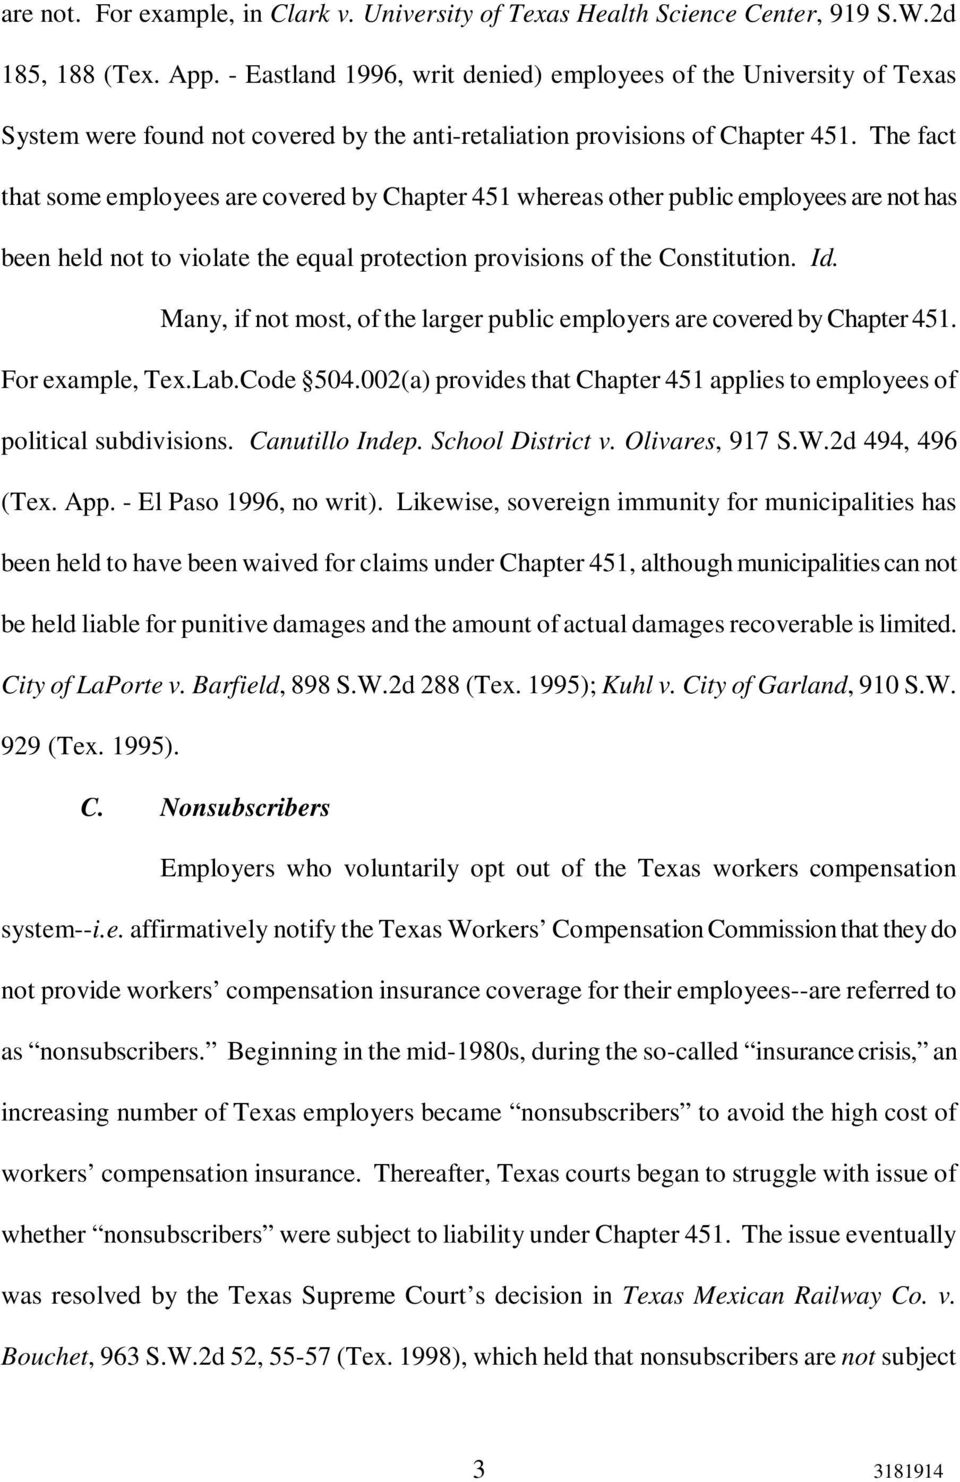 The fact that some employees are covered by Chapter 451 whereas other public employees are not has been held not to violate the equal protection provisions of the Constitution. Id.